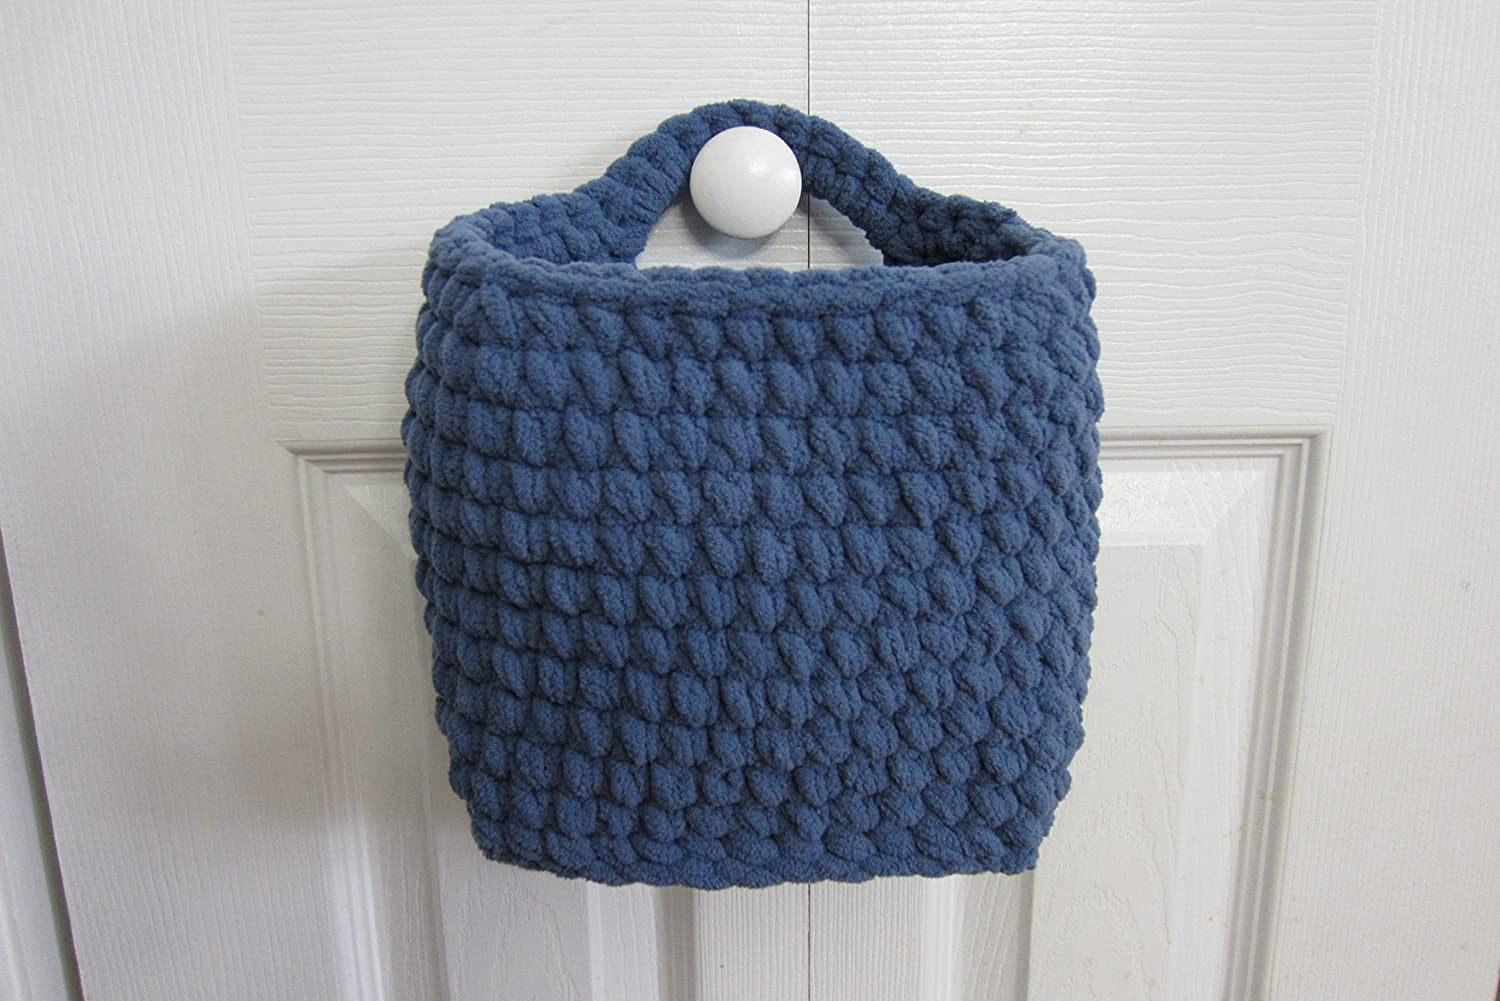 Large Hanging Basket, Rectangle Shaped, Crocheted Wall Baskets - Shown in Blue, Many Colors to Choose From!